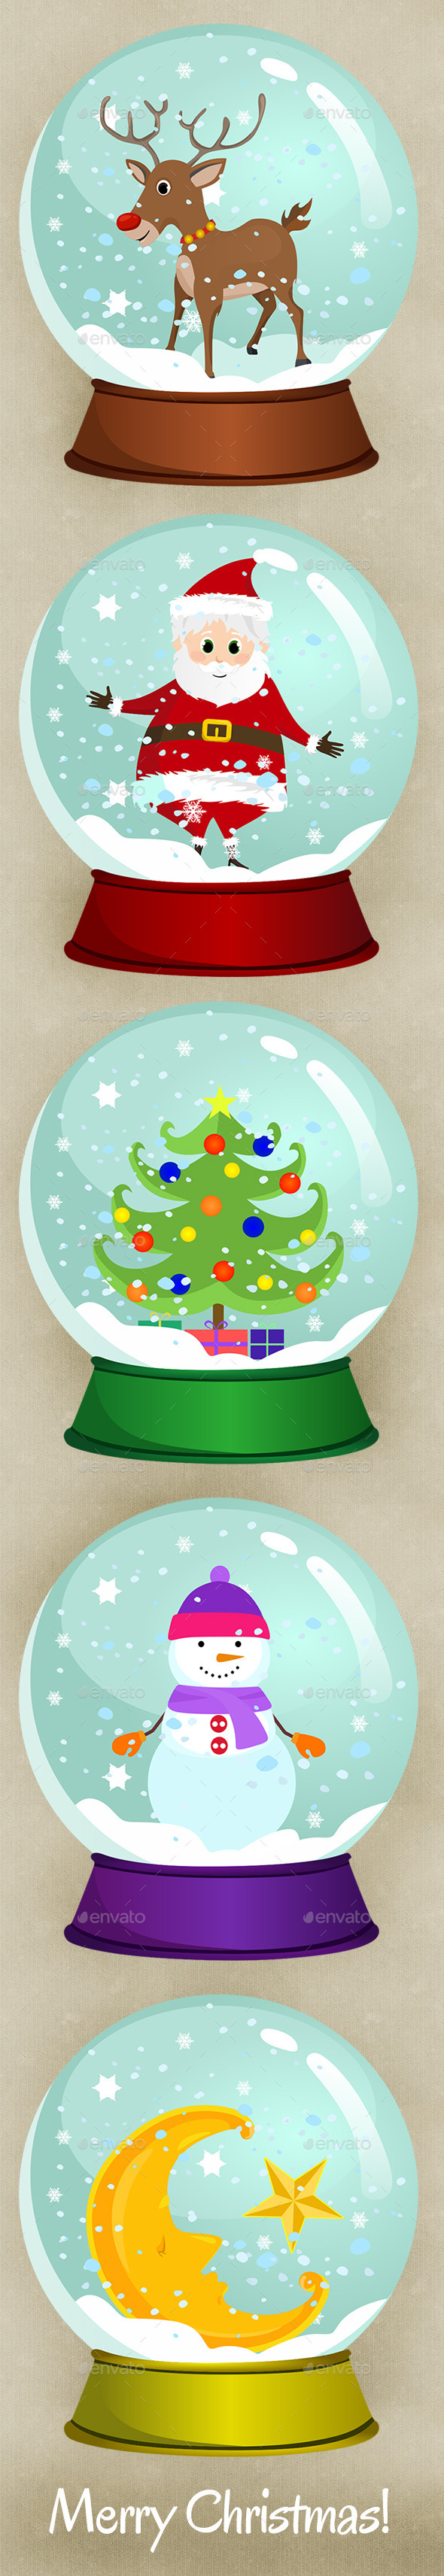 GraphicRiver Christmas Snow Globes 9656363